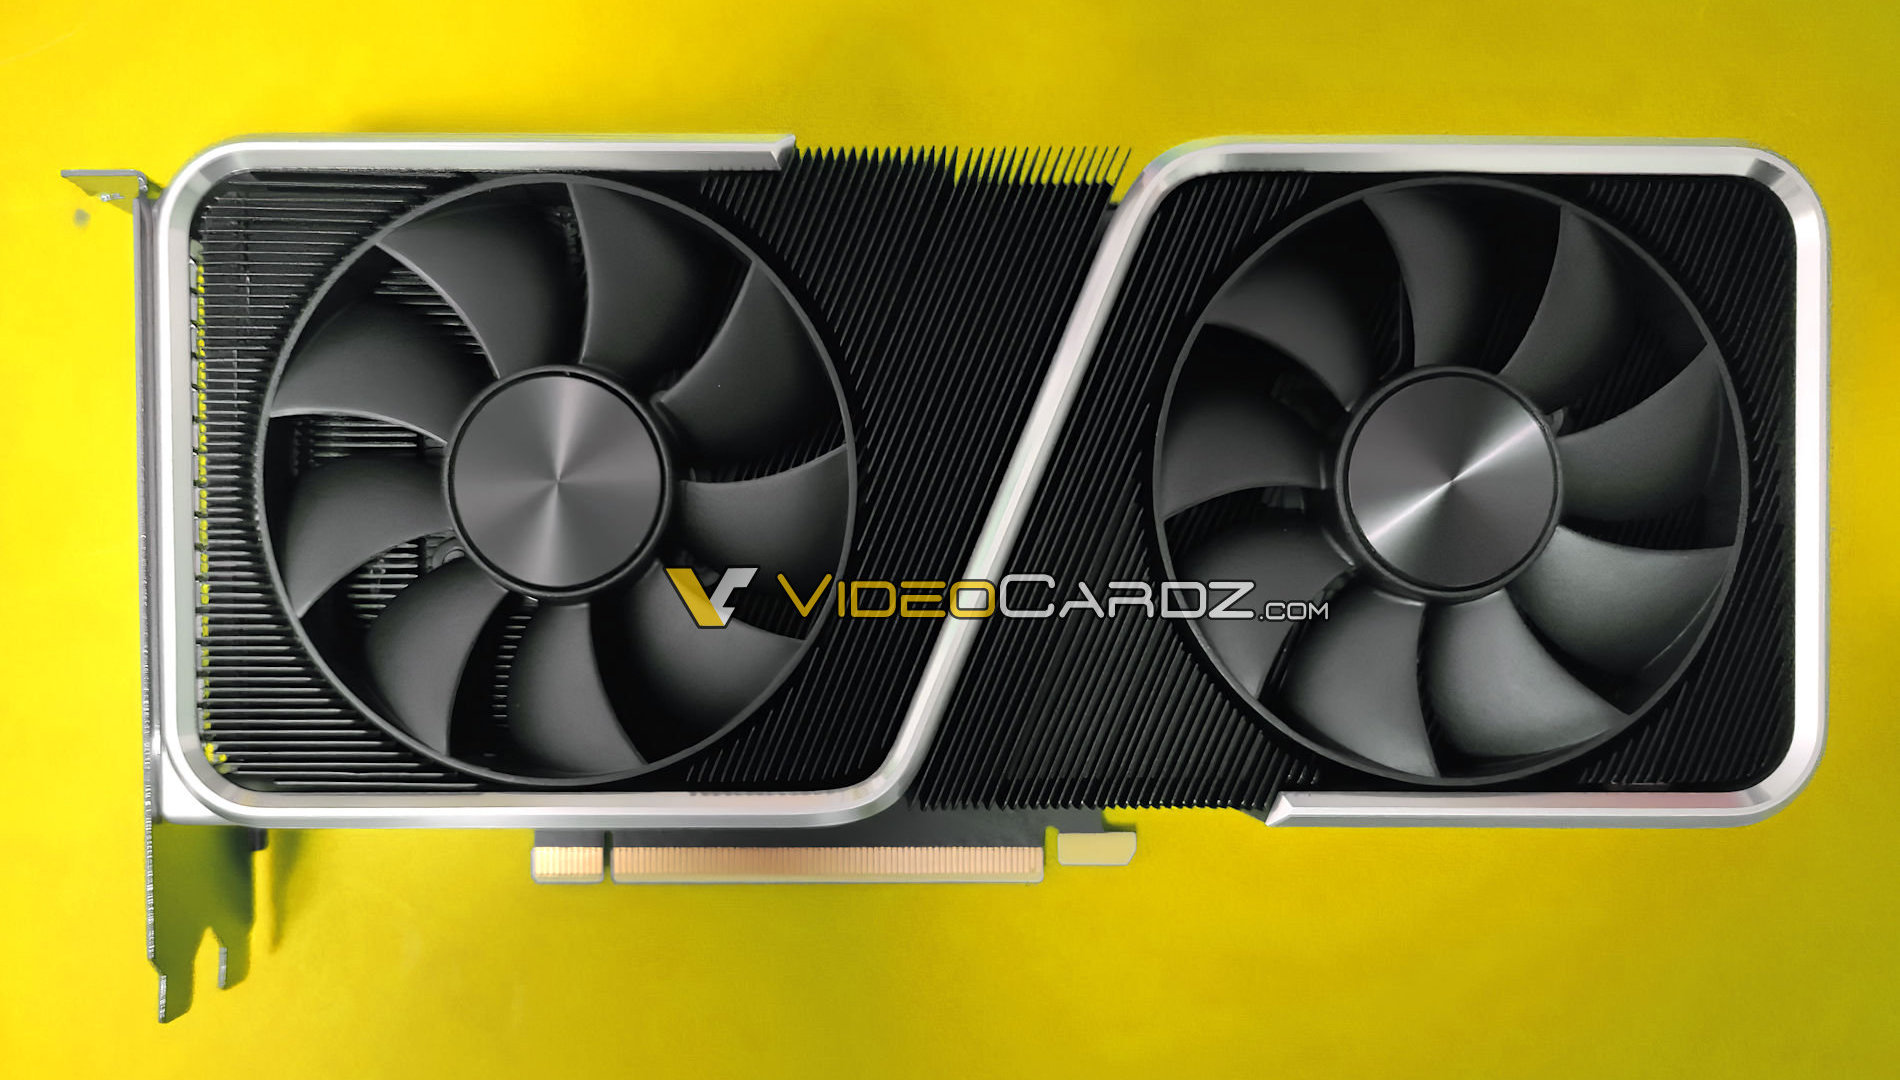 Geekbench: GeForce RTX 3060 Ti is almost as fast as Radeon RX 6800 in OpenCL benchmark – VideoCardz.com